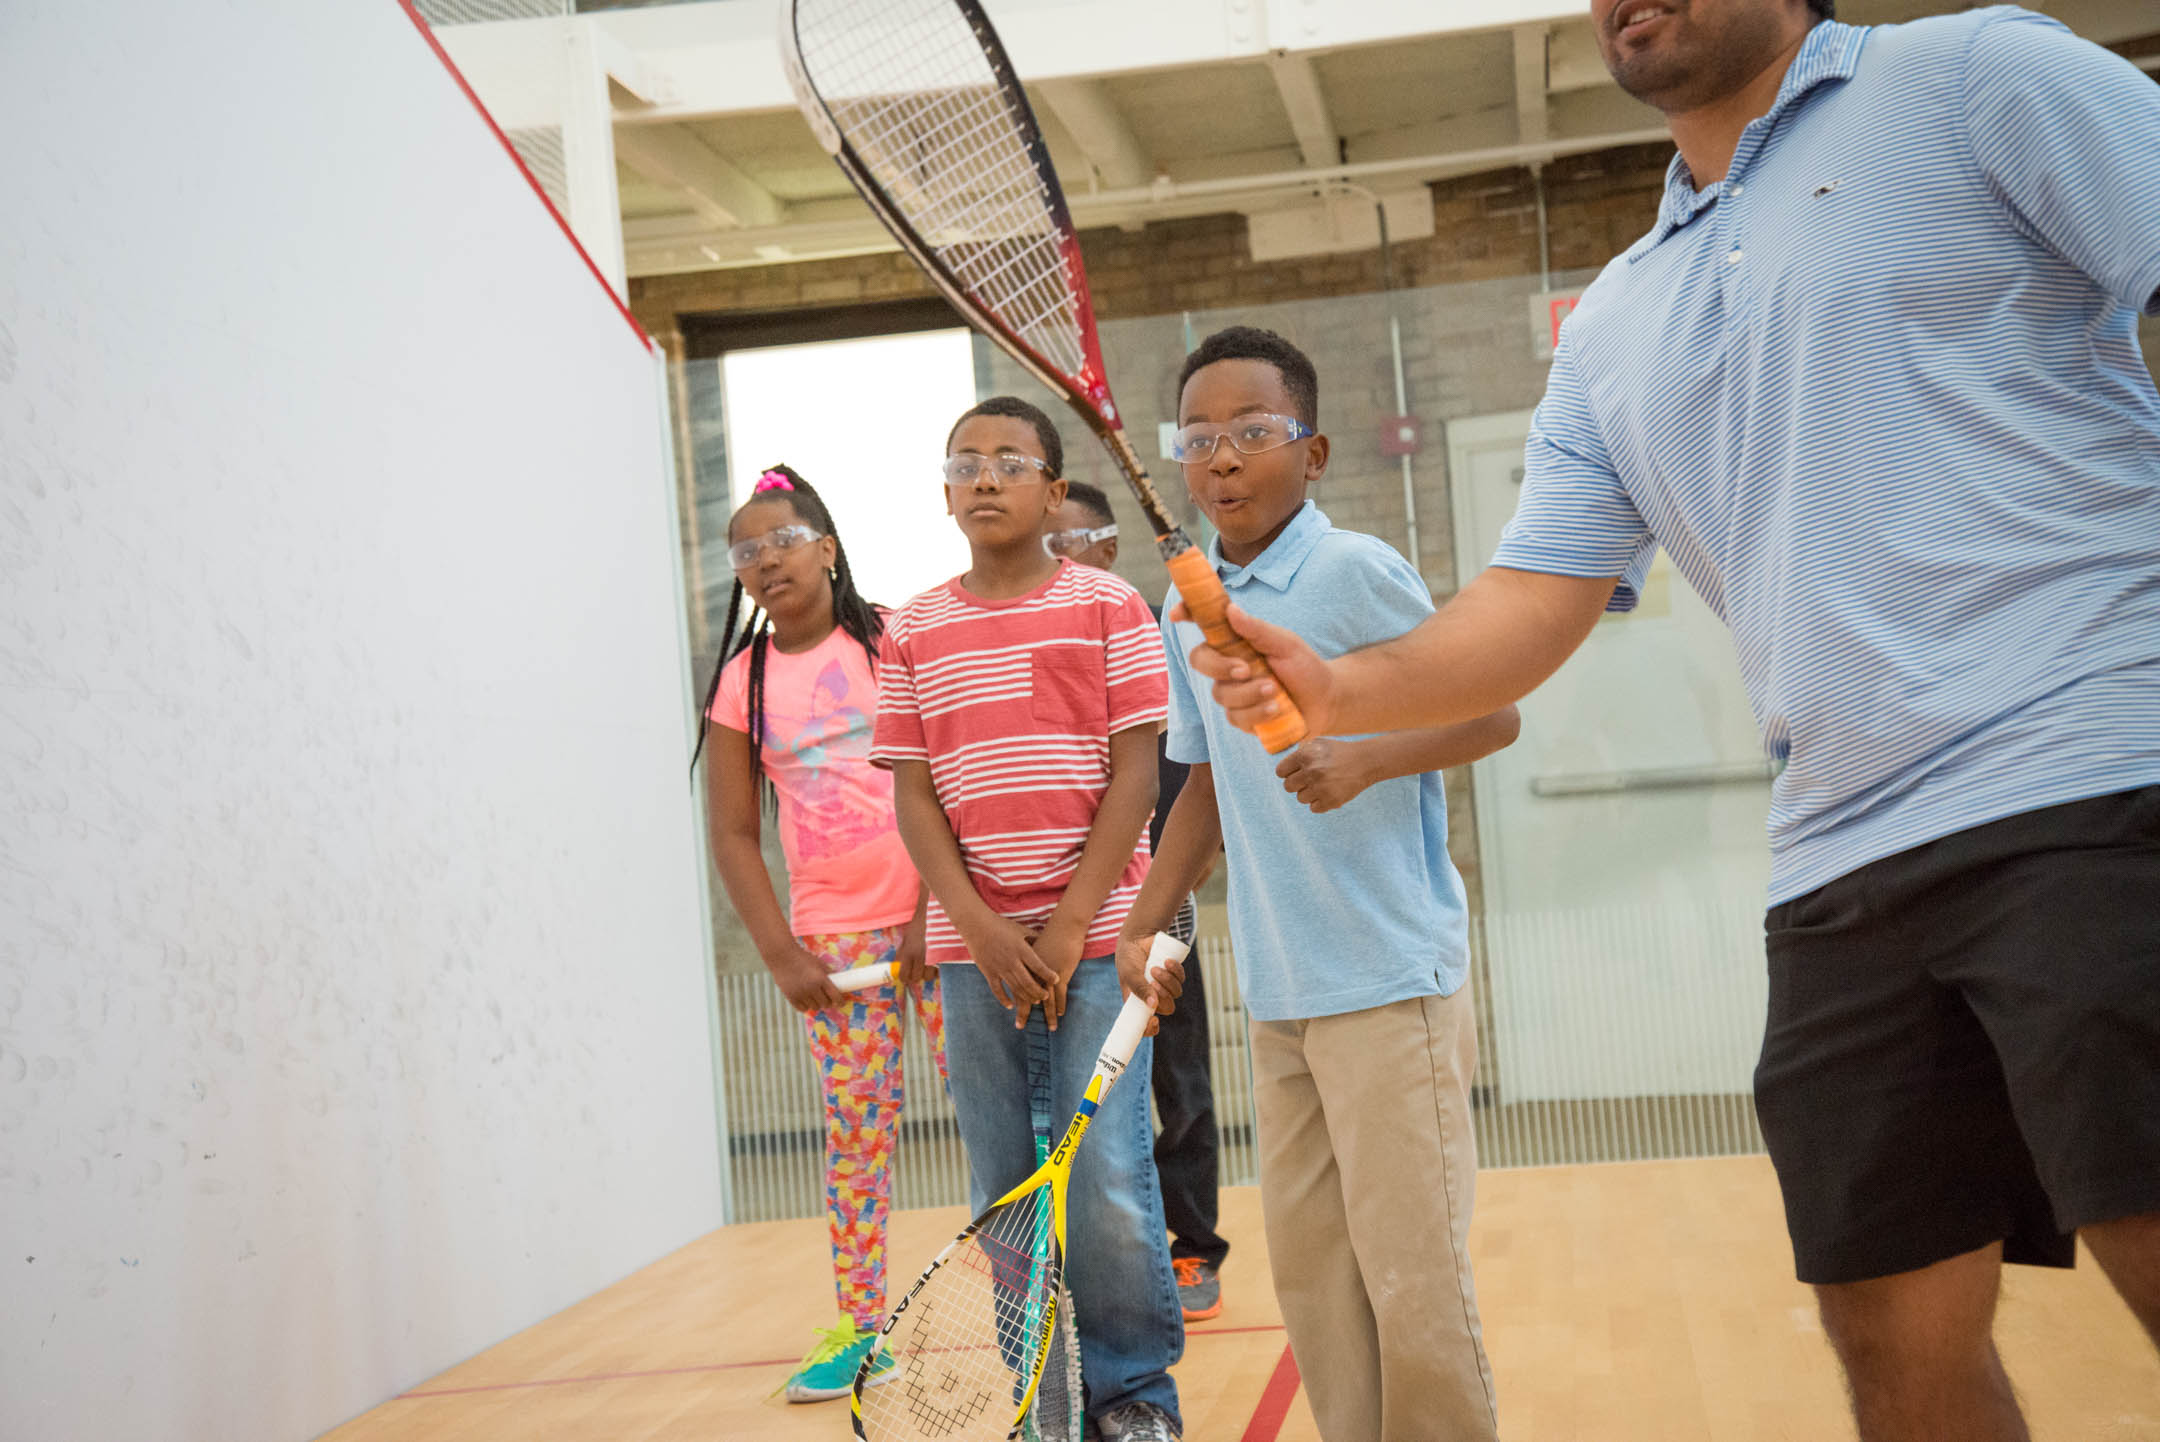 Kids of the Cincinnati Squash Academy watch as Coach Vir Seth show them techniques during practice Monday May 8, 2017.